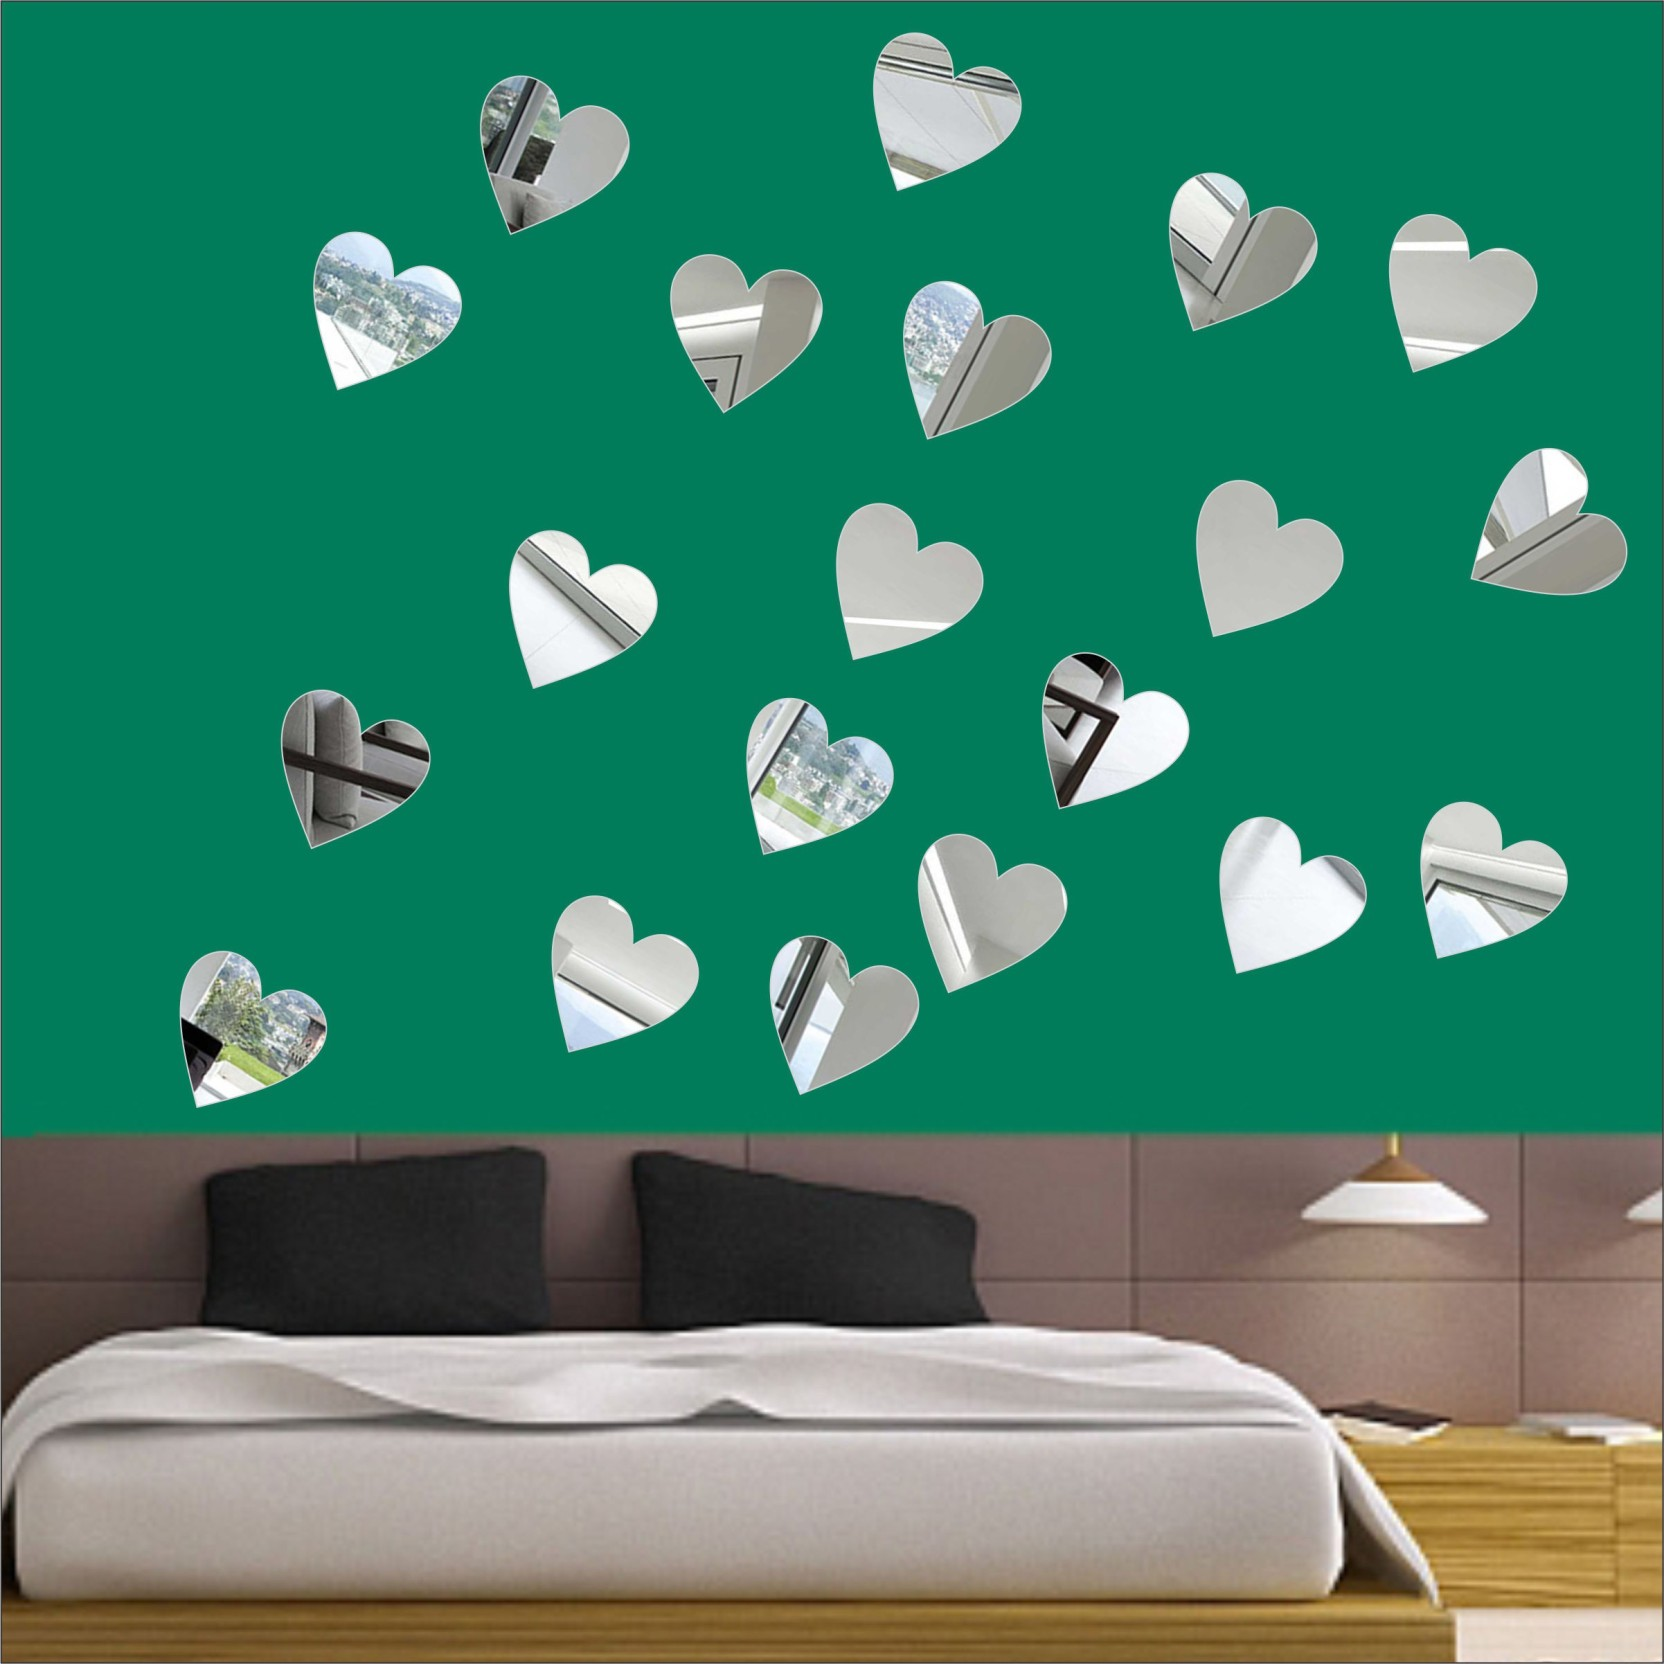 5c849dc19a LOOK DECOR Extra Large LOOK DECOR Hearts (pack of 20) 7Acrylic Sticker, 3D  Acrylic Sticker, 3D Mirror, 3D Acrylic Wall Sticker, 3D Acrylic Stickers  for Wall ...